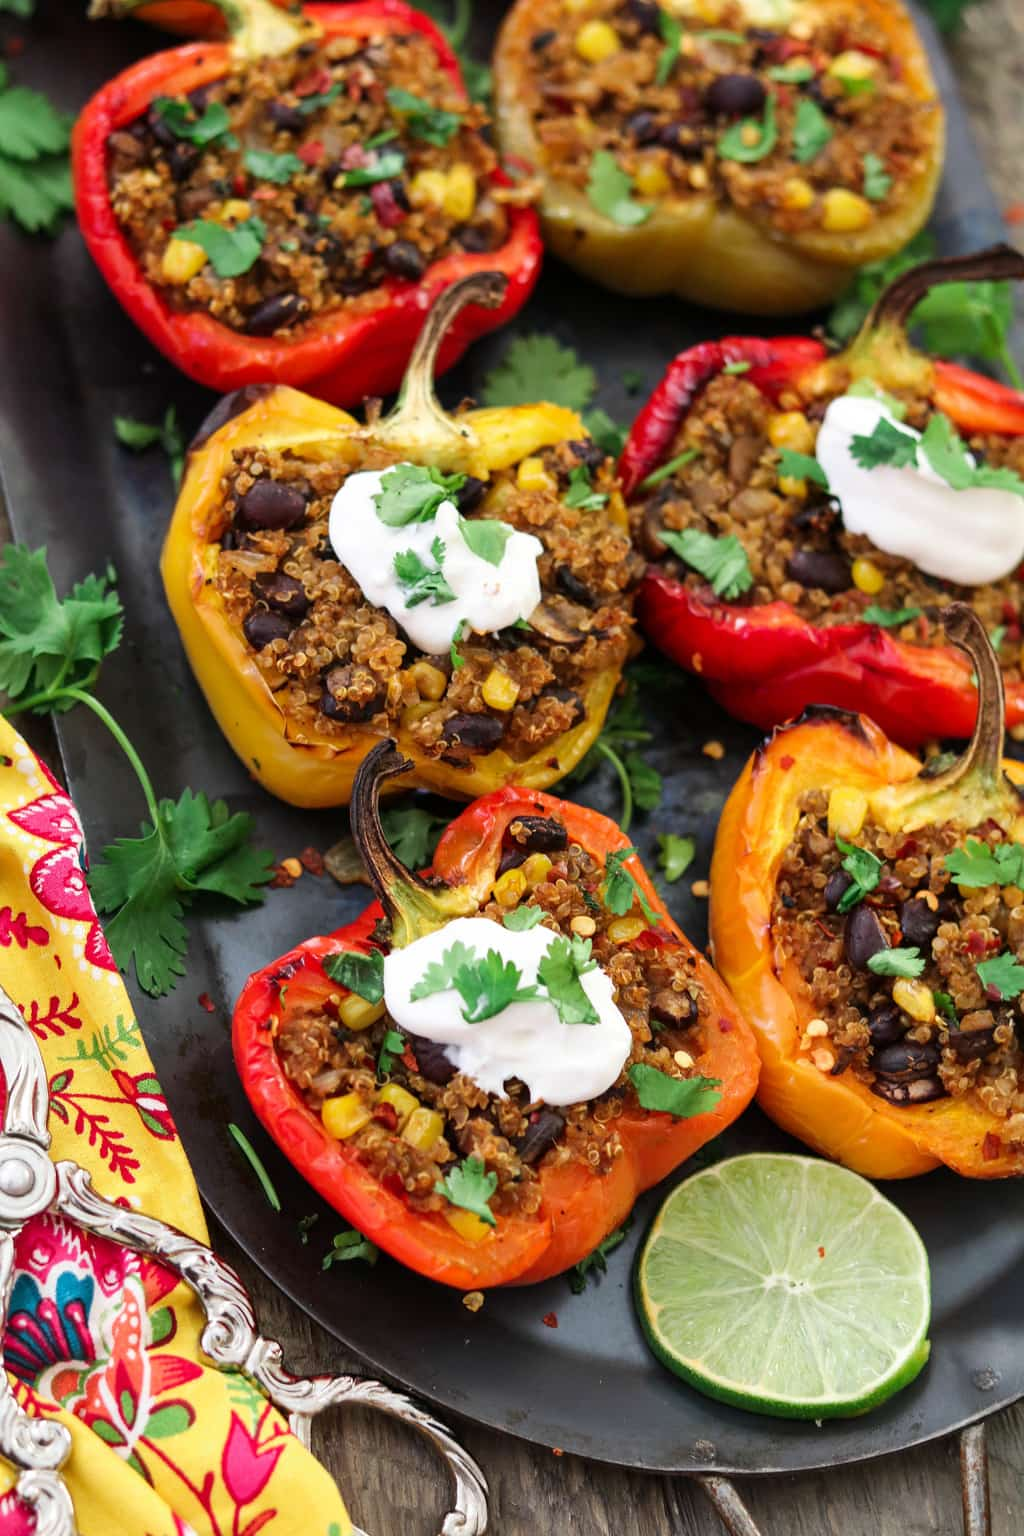 Looking to spice up your weeknight menu? These vegan Quinoa Stuffed Peppers are Savory, smoky, subtly sweet & satisfying. Gluten-free too!